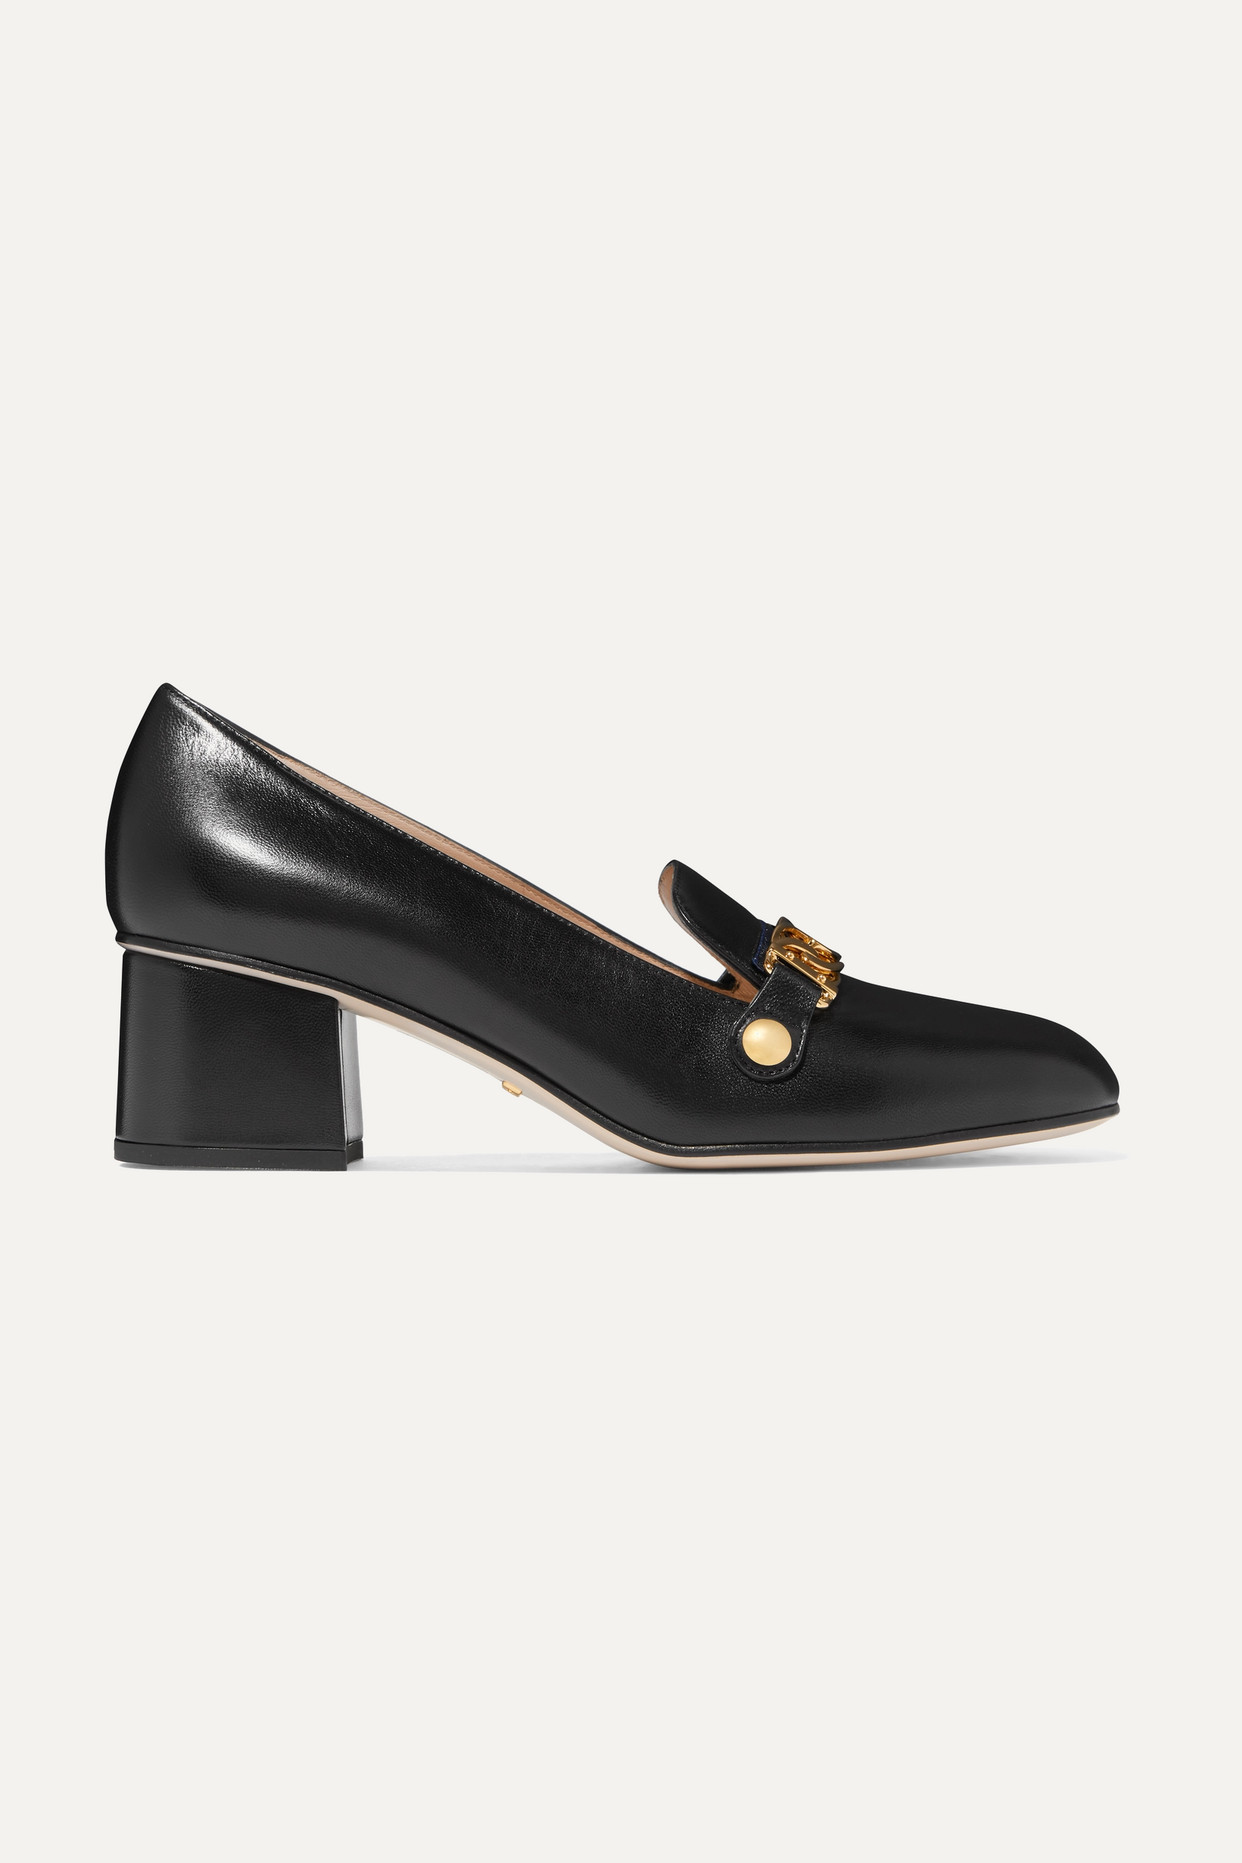 GUCCI - Sylvie Chain-embellished Leather Pumps - Black - IT40